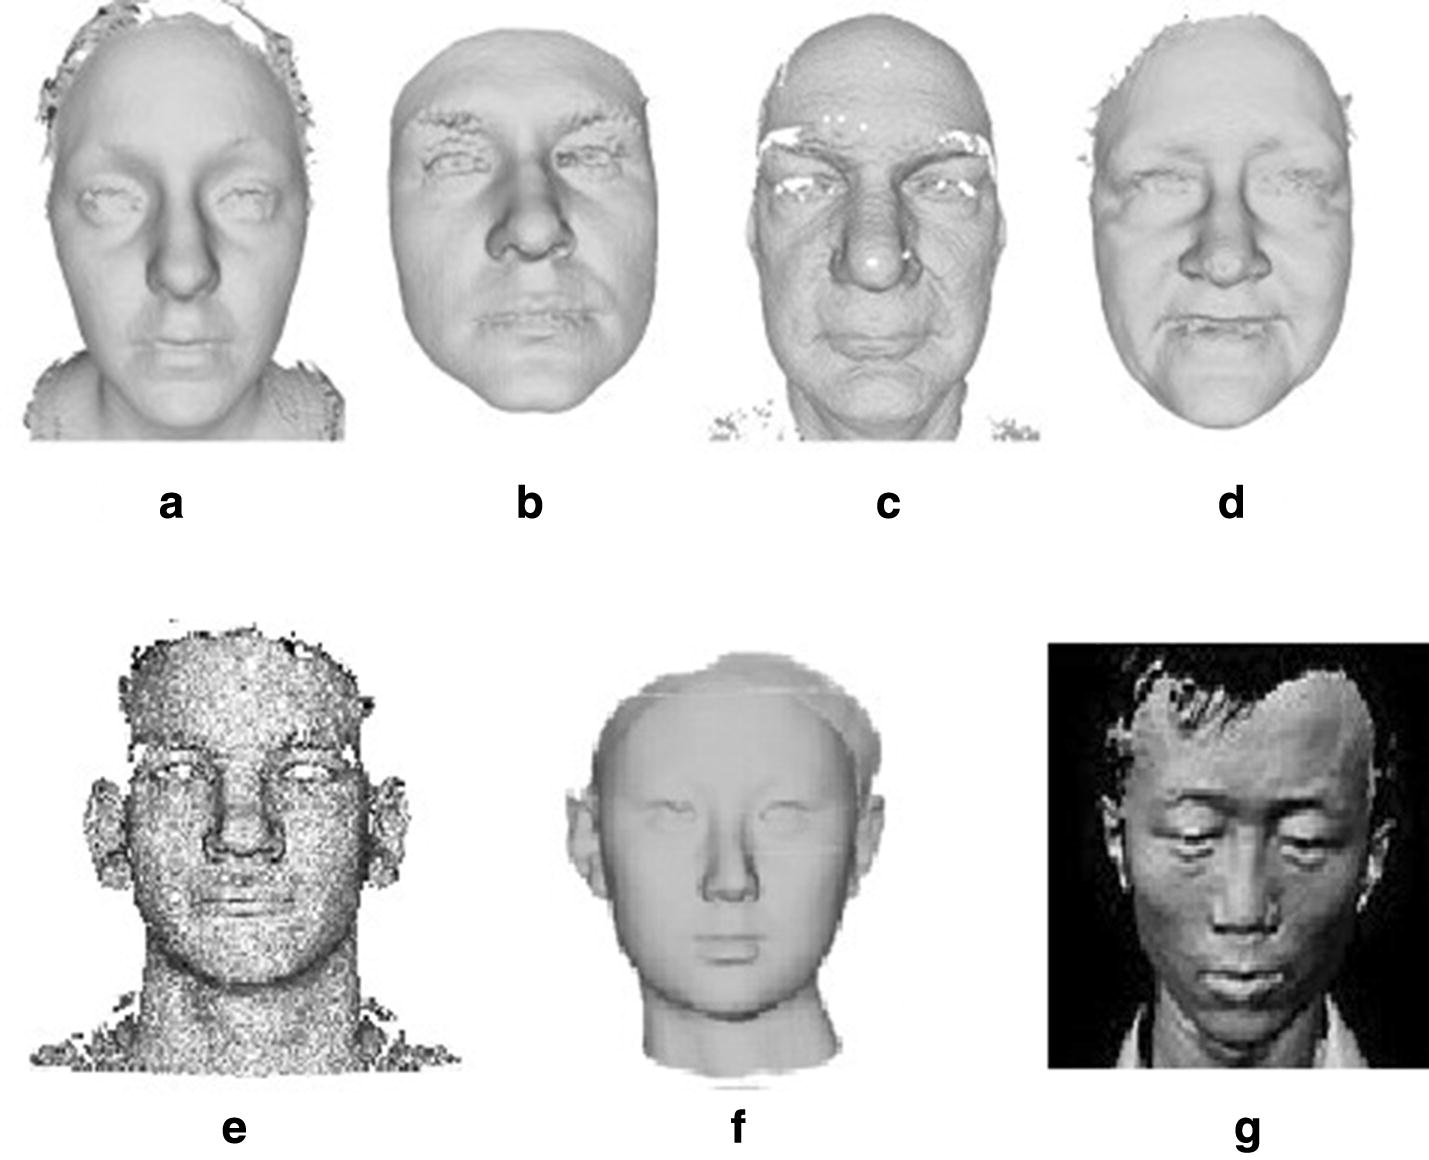 3D face recognition: a survey | SpringerLink